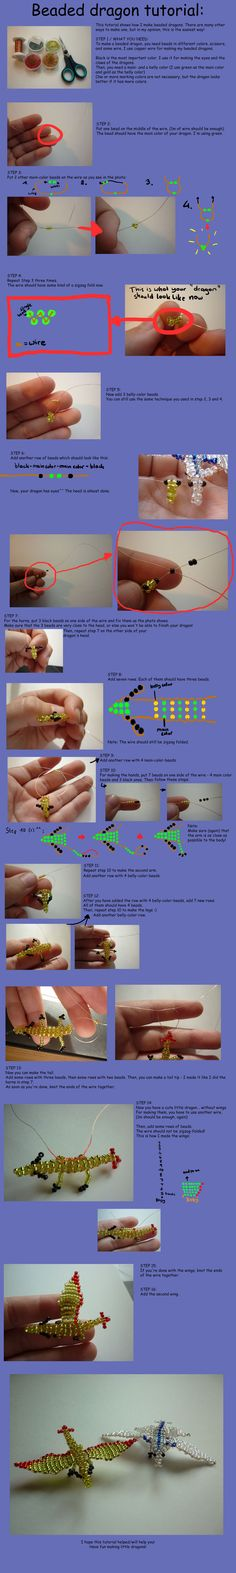 Beaded dragon tutorial.